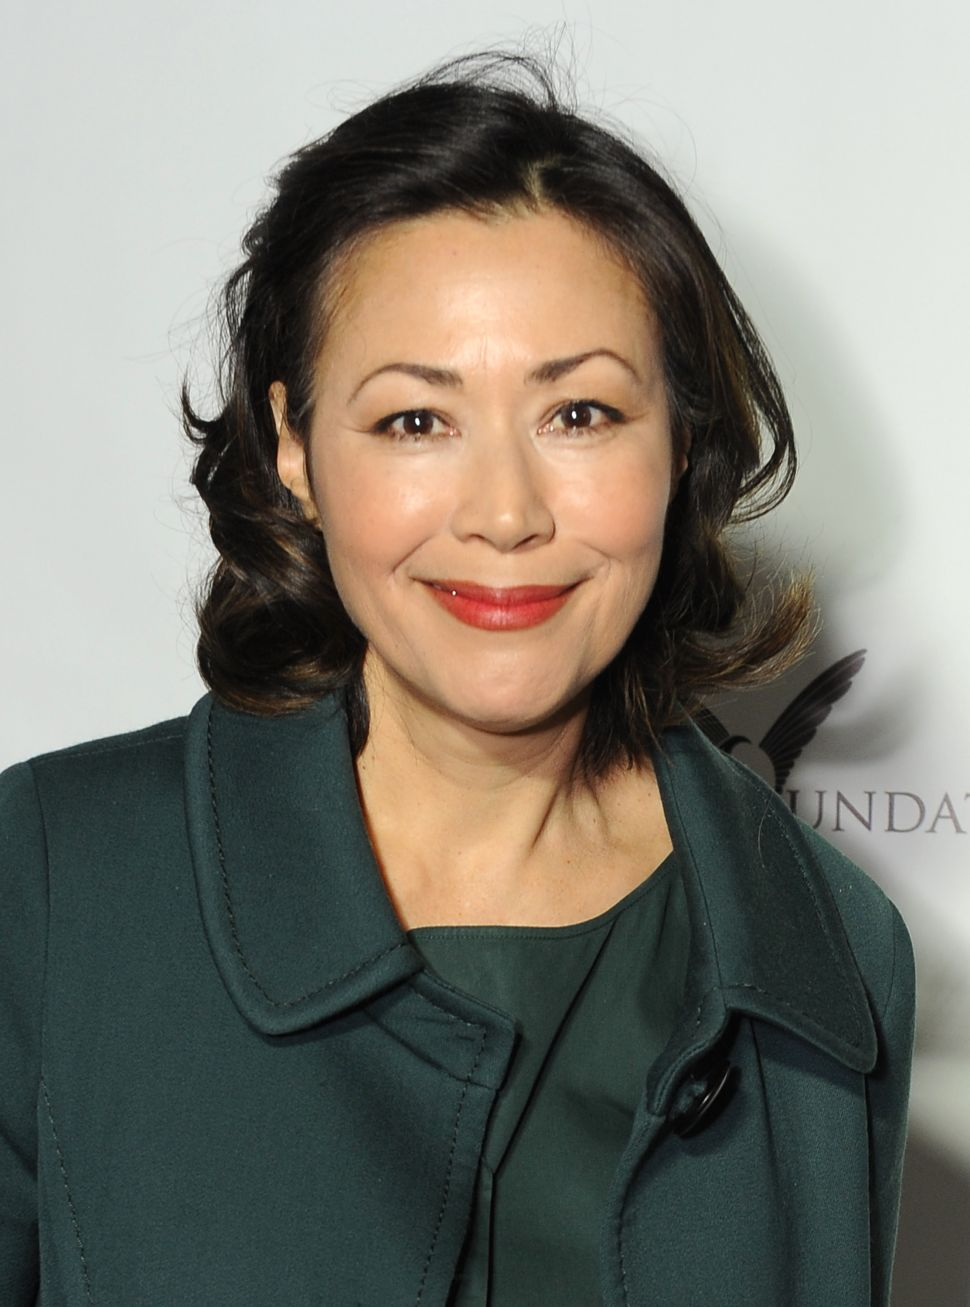 Out of the Woods: New Jersey Boy Scouts Rescue Ann Curry